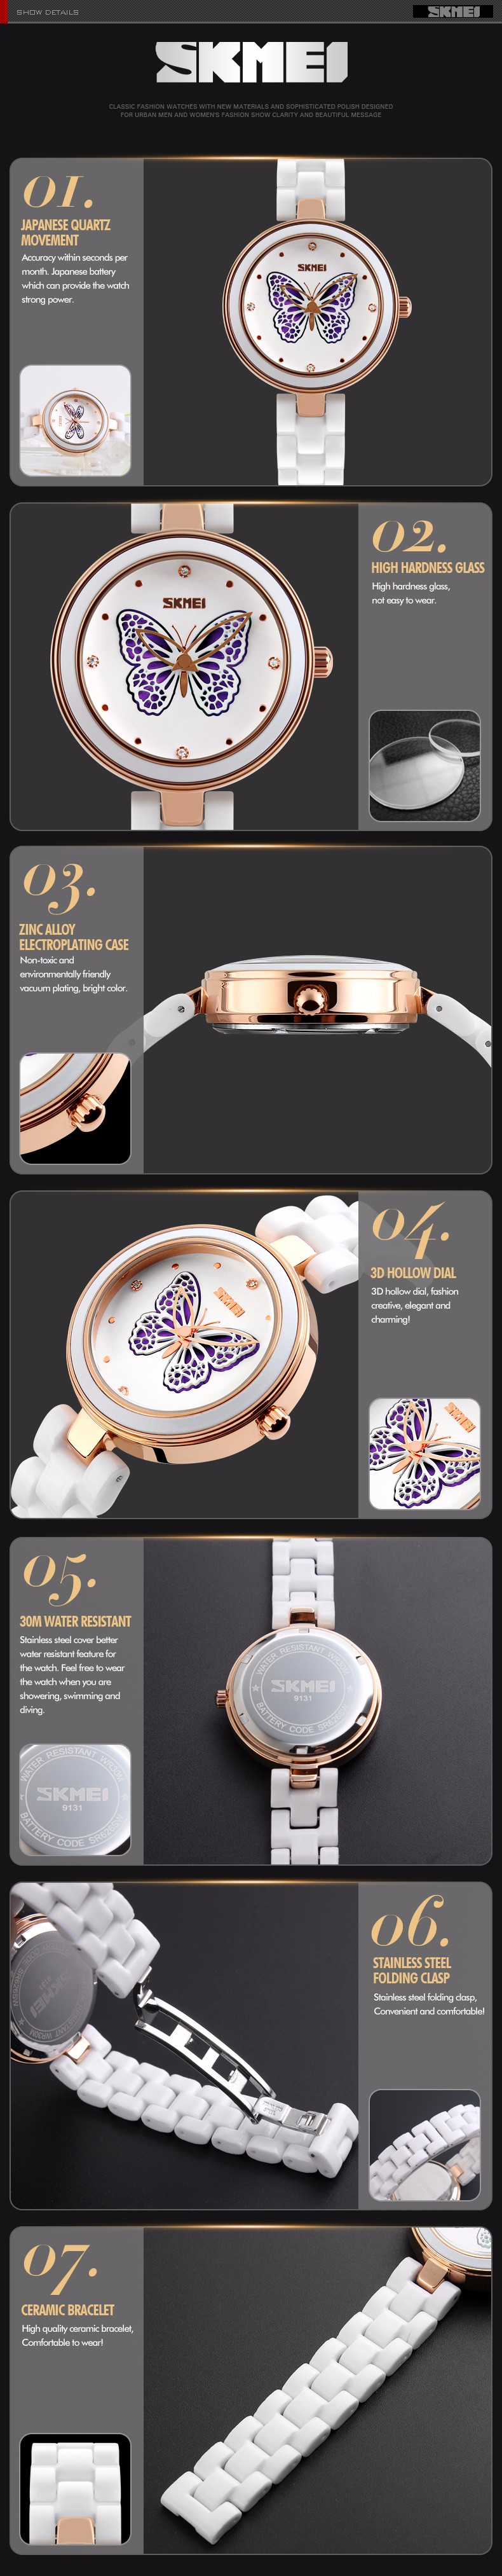 Skmei Brand Fashion Womens Watches Luxury Ceramic Band Quartz Toyota Emina Fuse Box Product Is Not A If You Need The Gift Please Open Following Link Buy